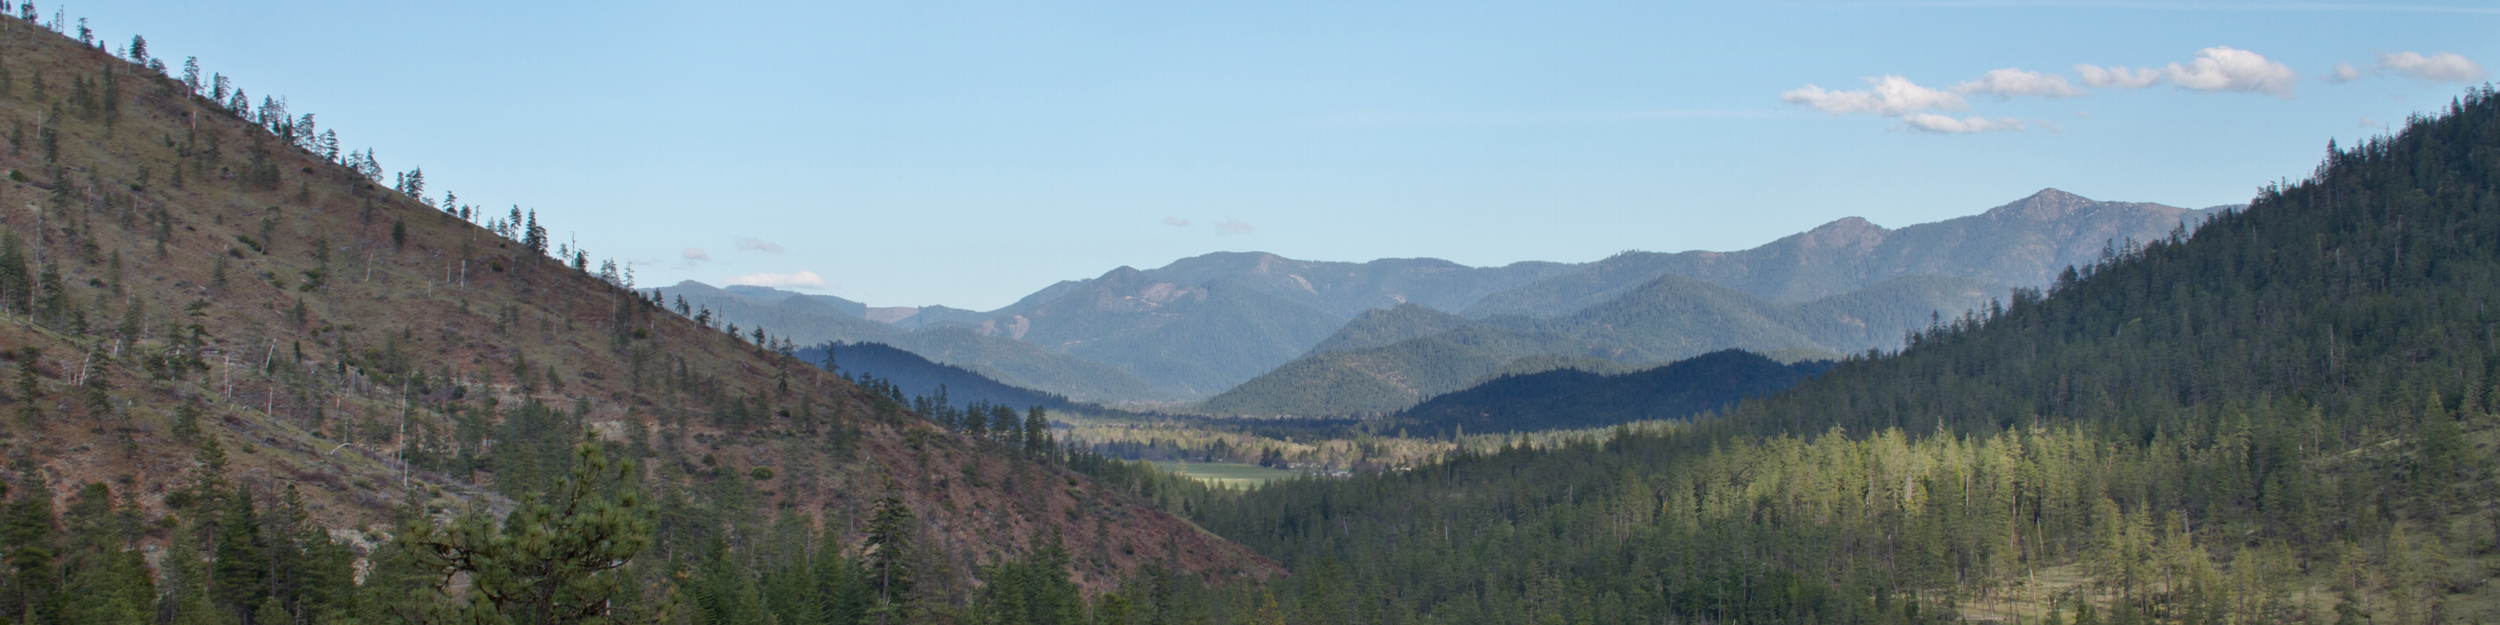 Illinois Valley Buy Southern Oregon Real Estate And